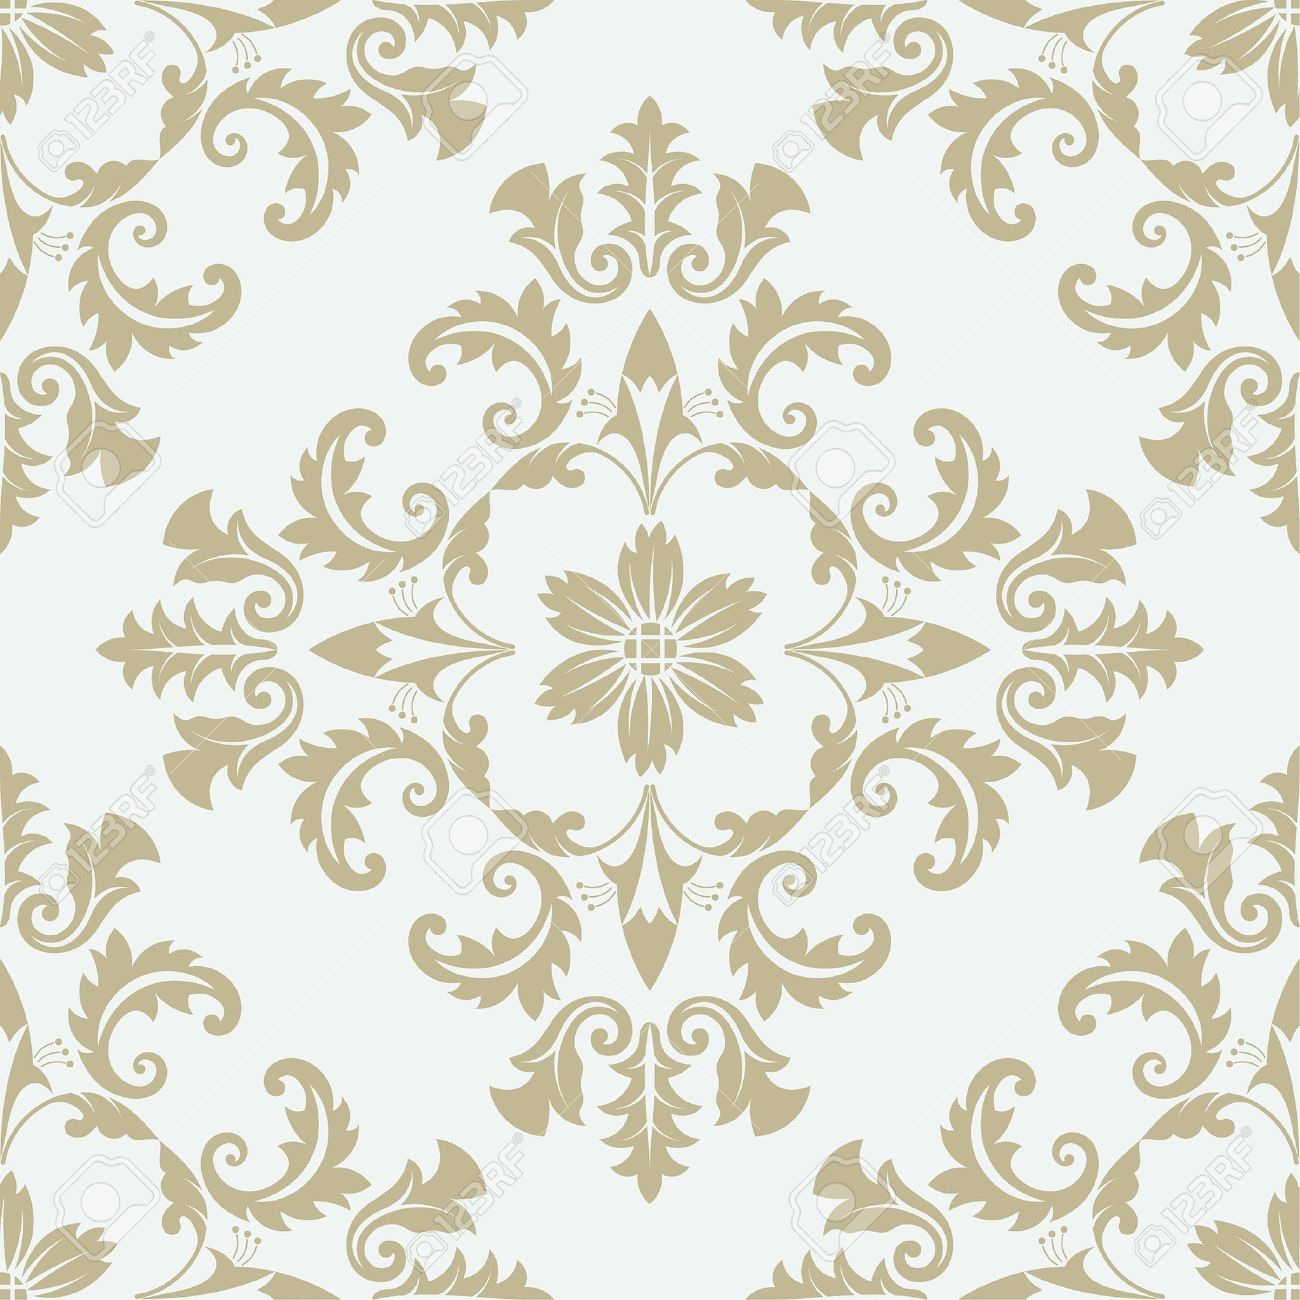 Luxury Floral Stylish Texture Of Damask Or Baroque Style Pattern Can Be Used As A Background Wallpaper Page Fill An Element Decoration Ornate